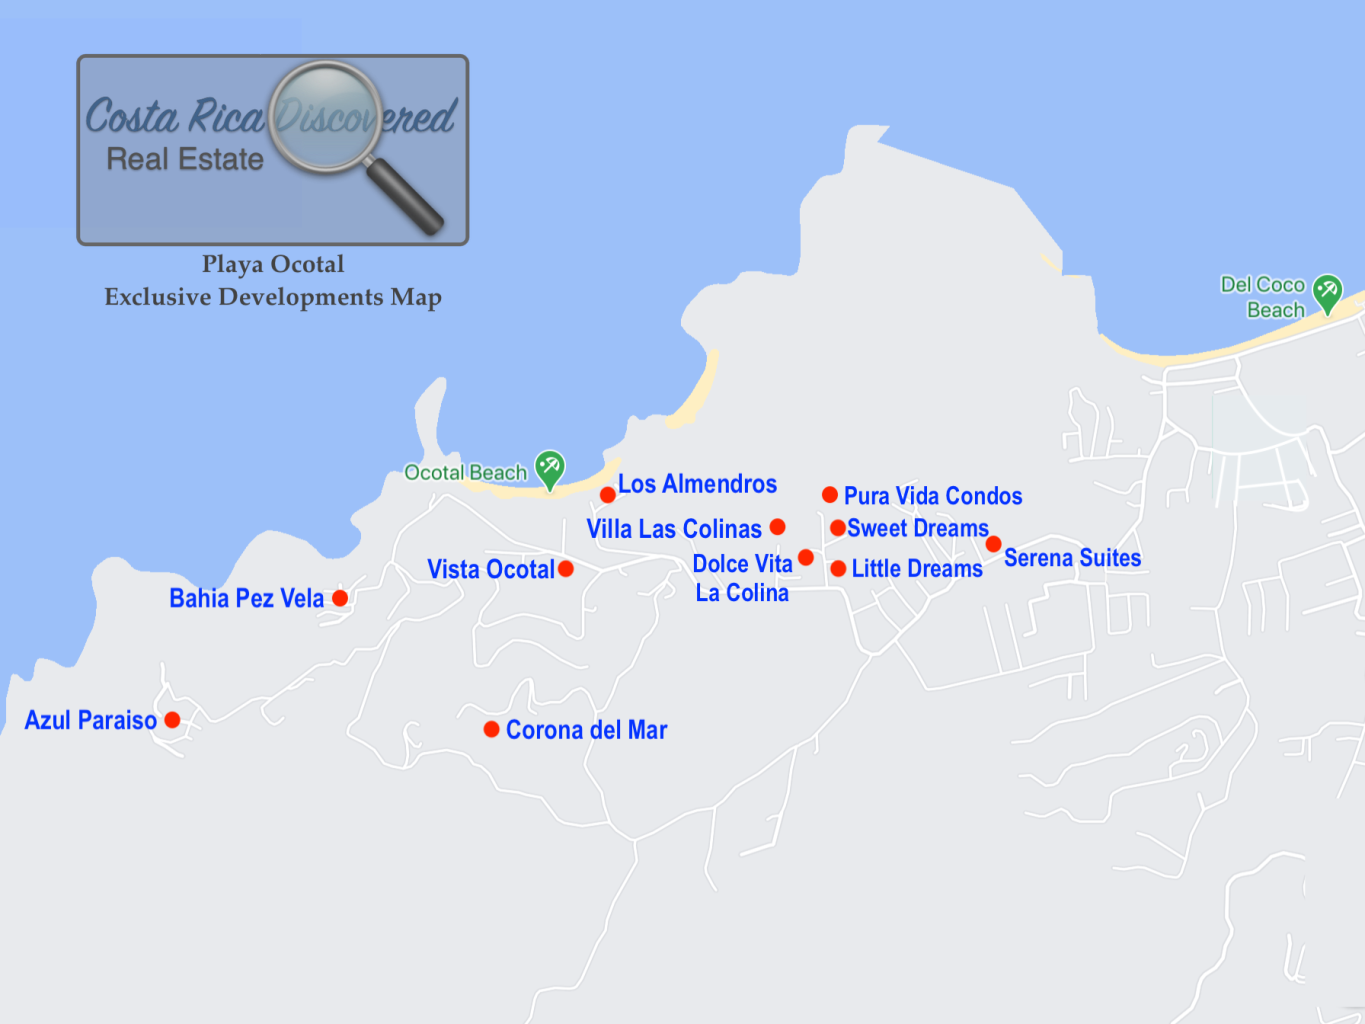 Playa Ocotal Exclusive Developments